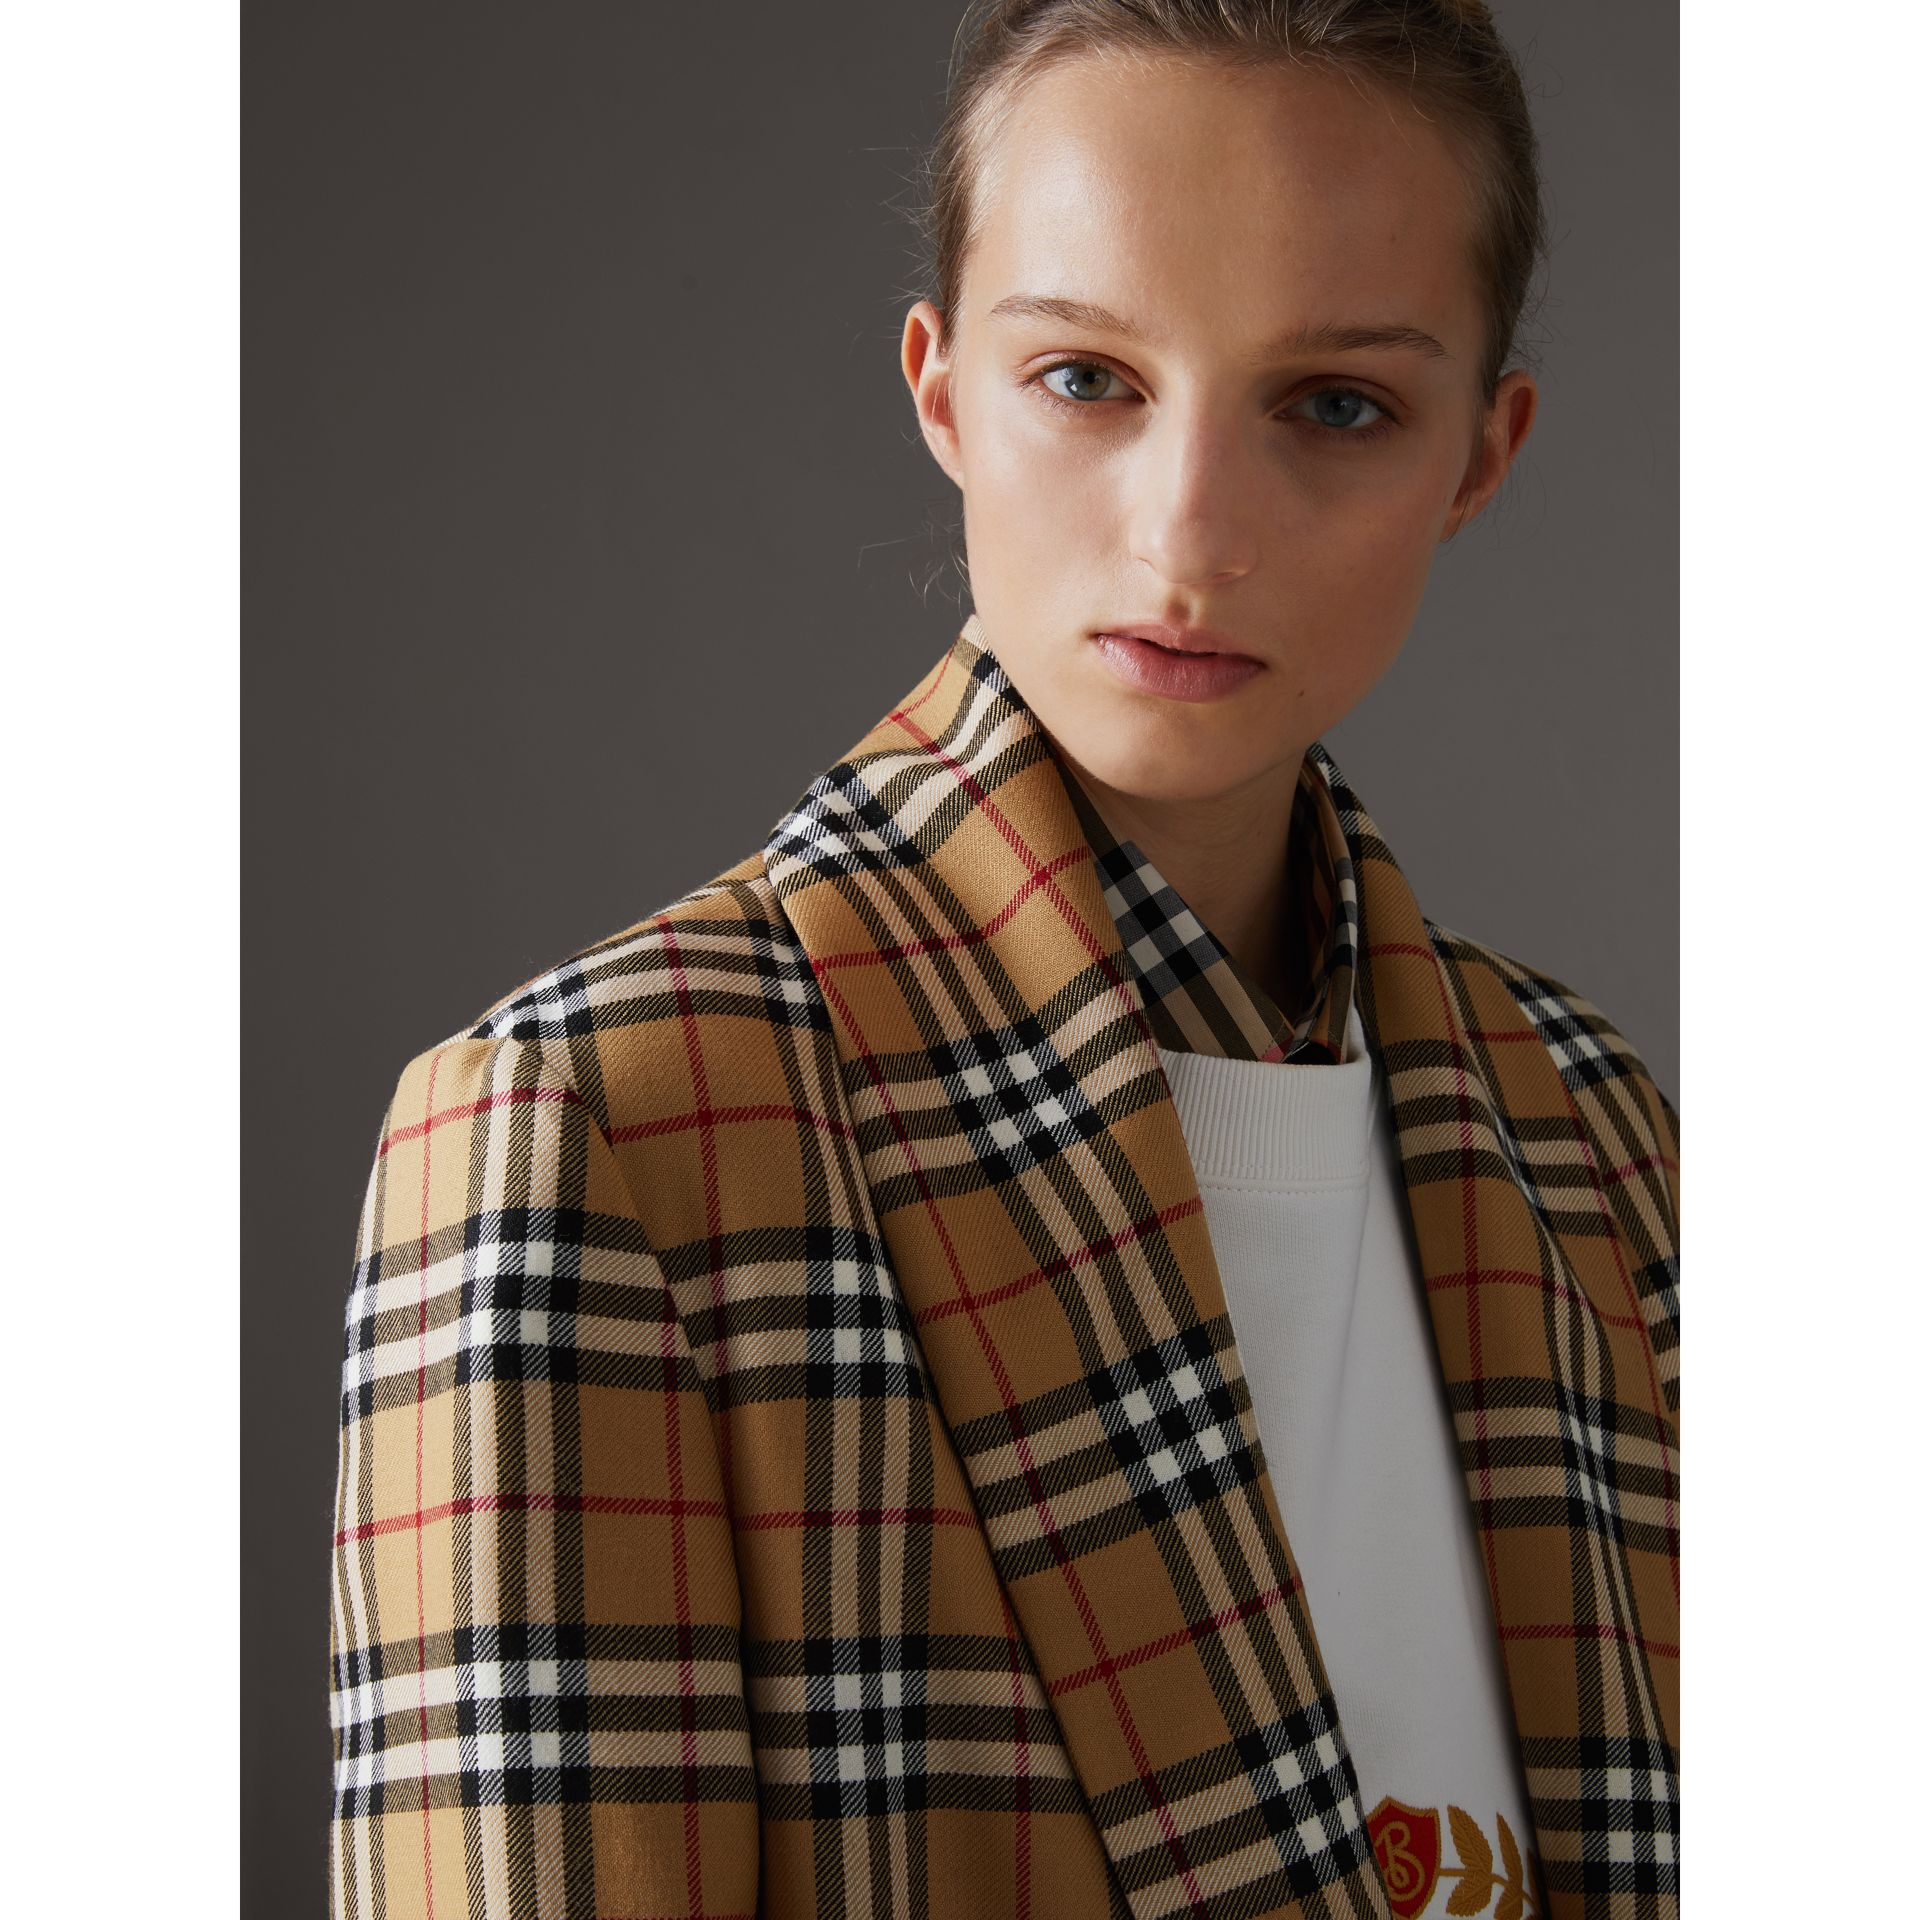 Manteau peignoir à motif Vintage check revisité (Jaune Antique) - Femme | Burberry Canada - photo de la galerie 5